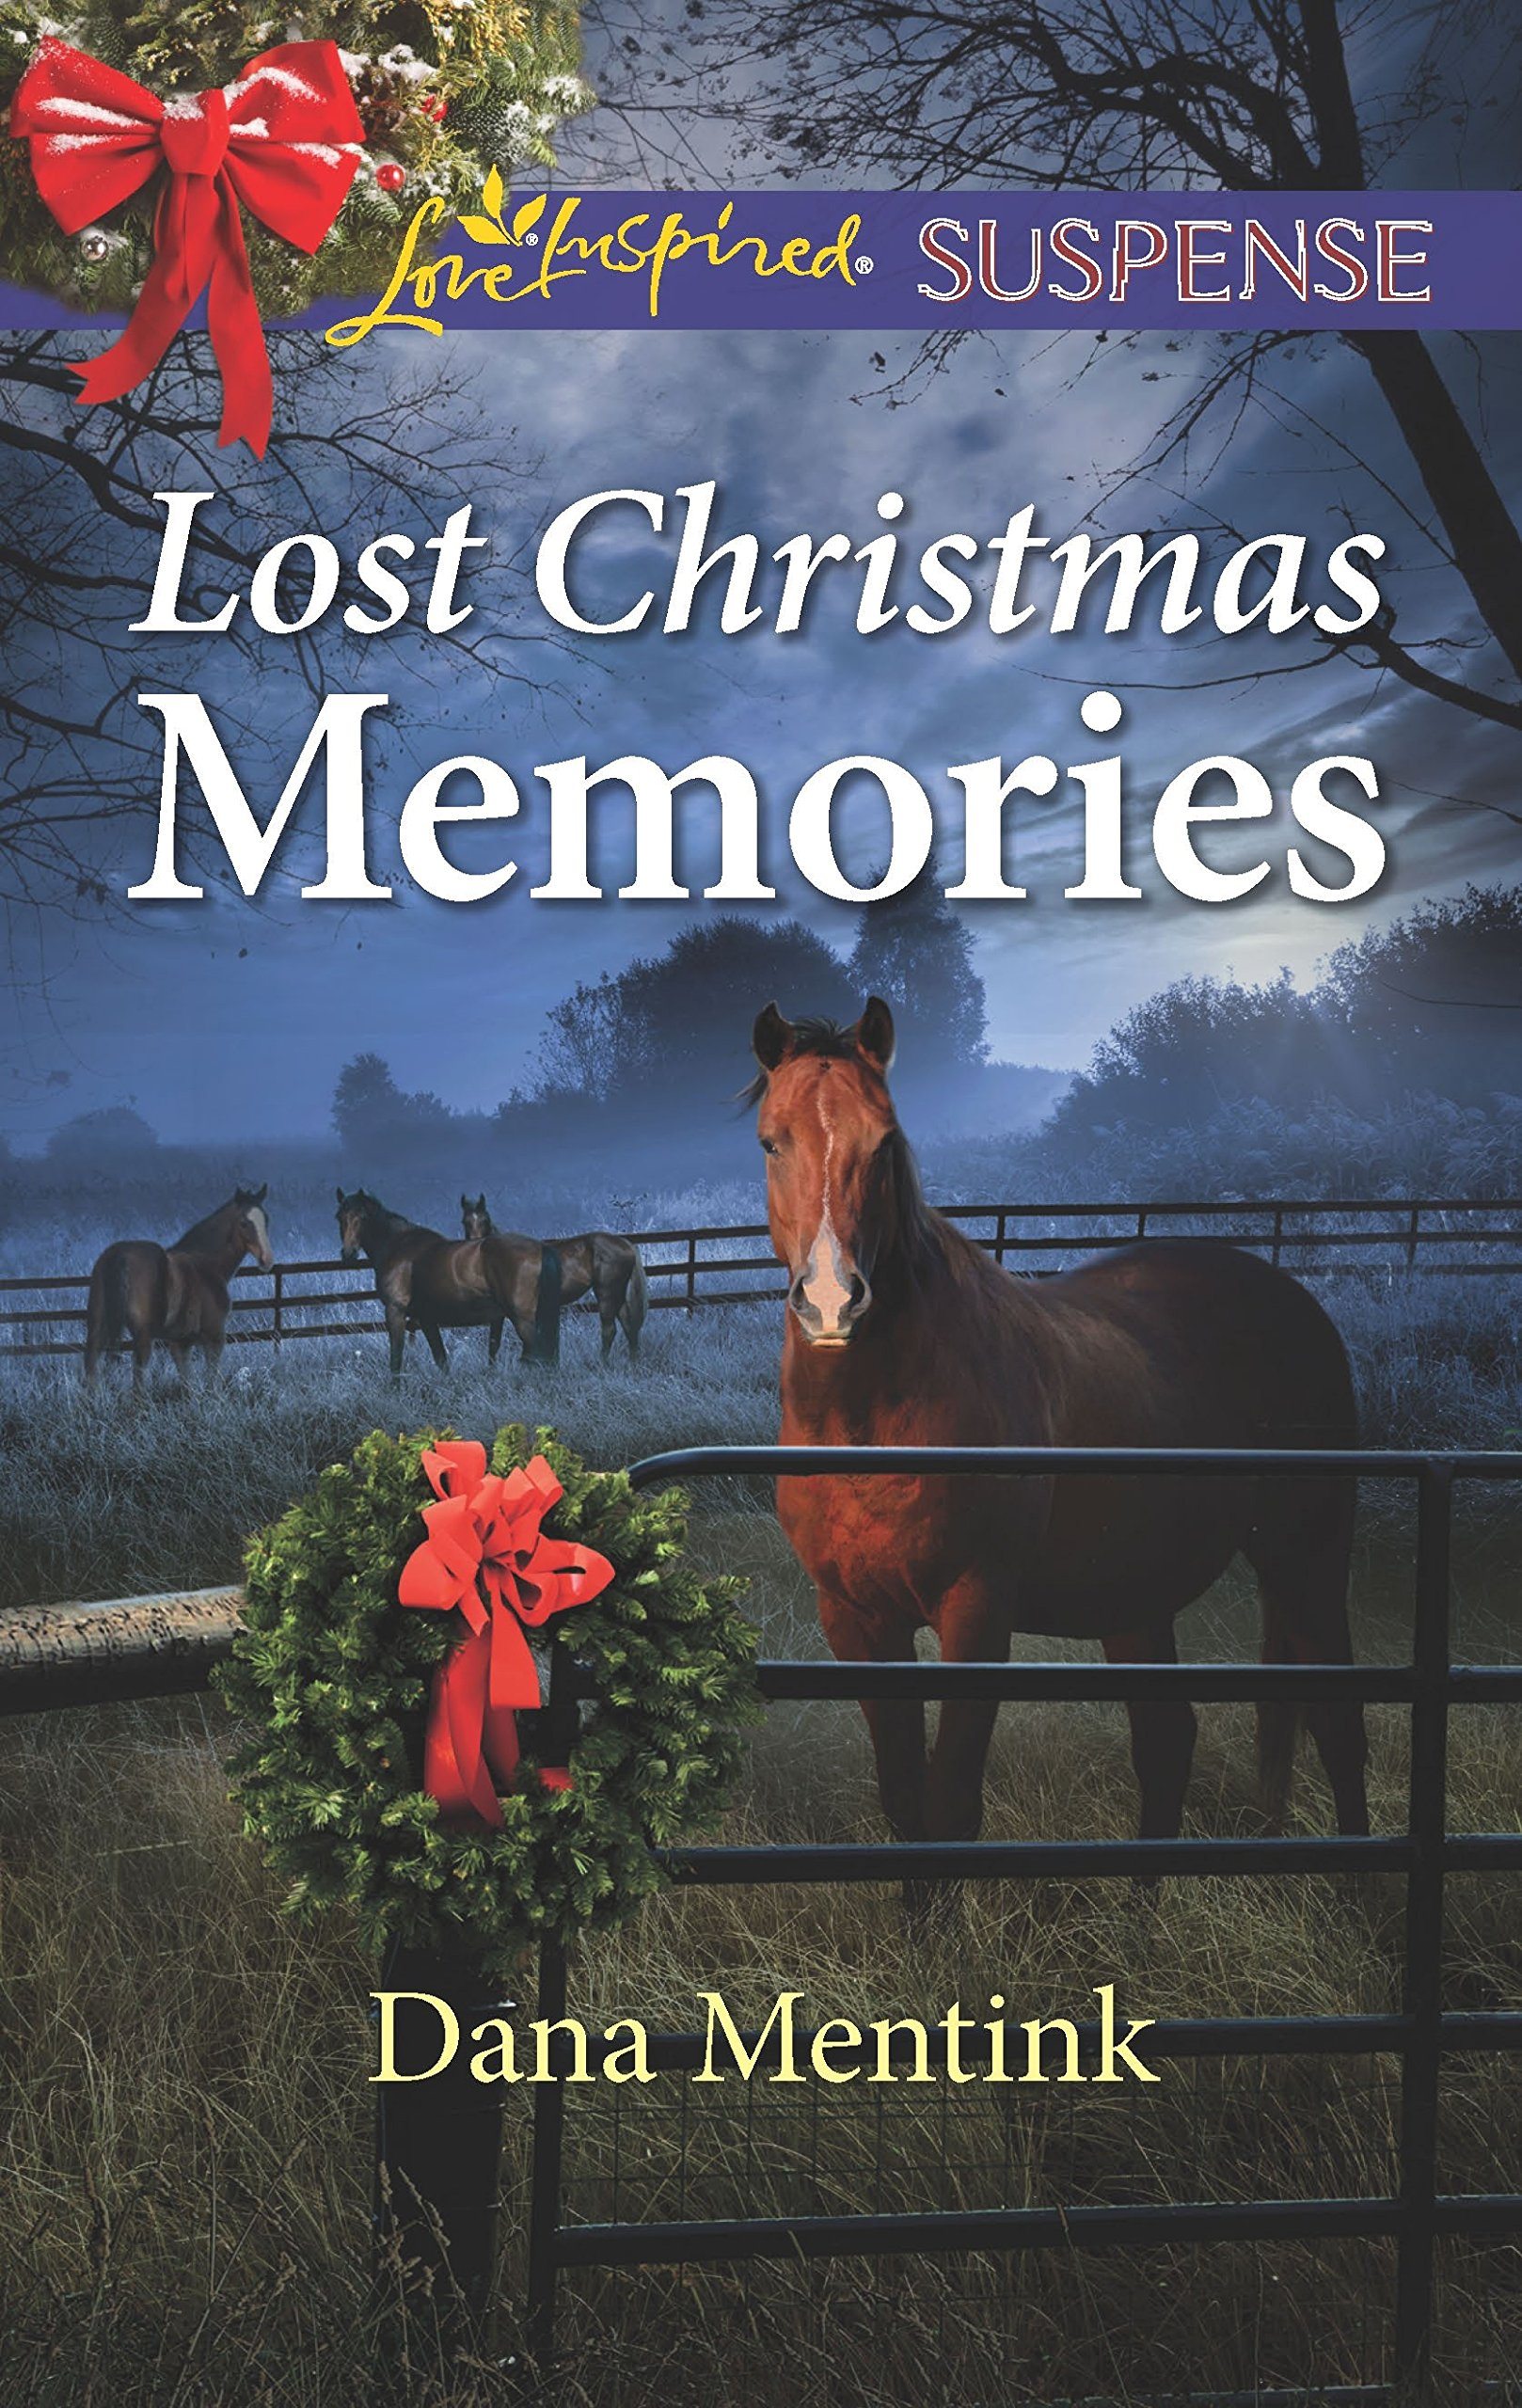 Image result for lost christmas memories dana mentink